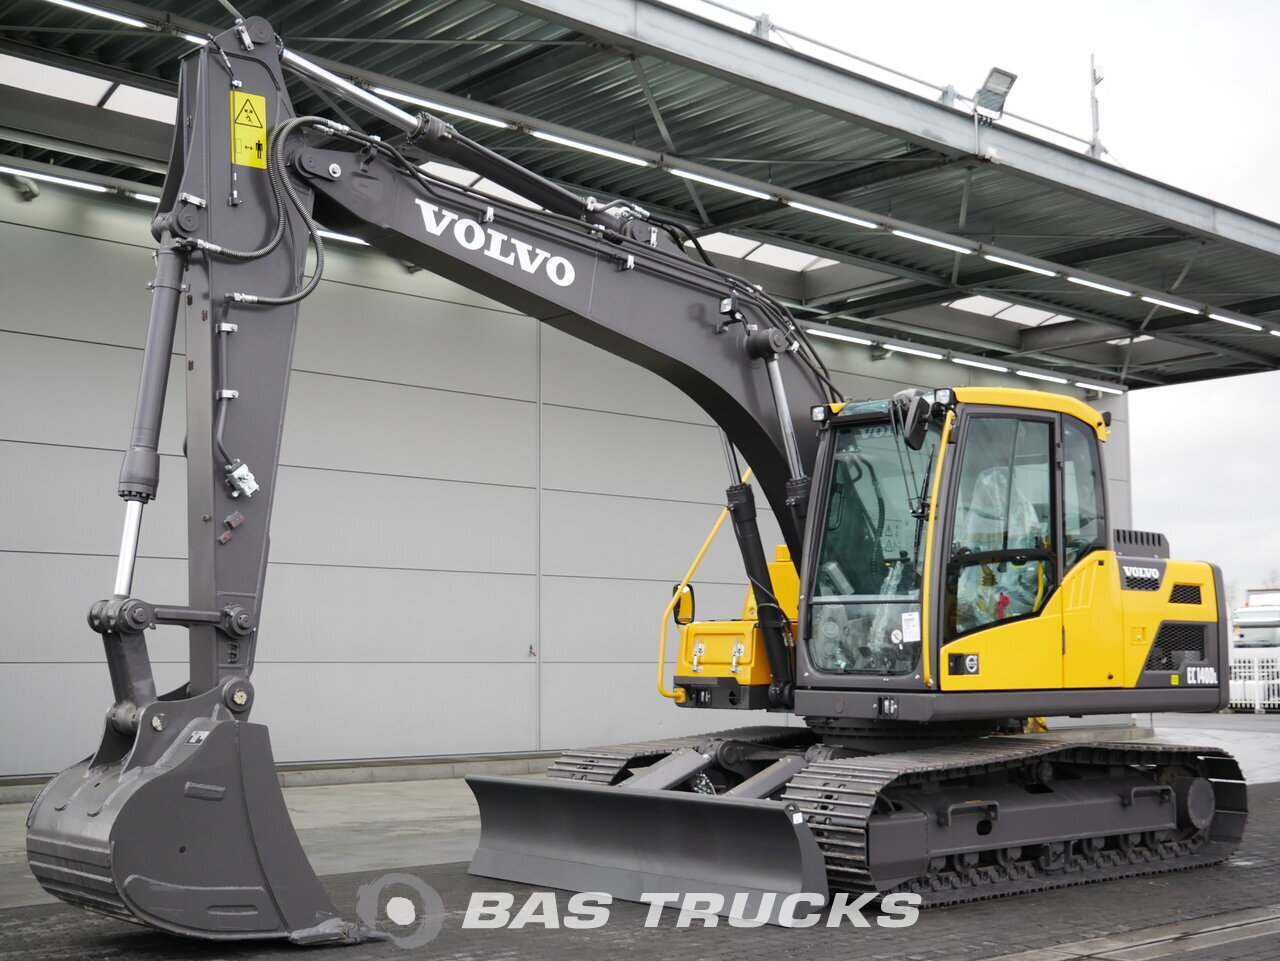 For sale at BAS Trucks: Volvo EC 140 D Track 01/2018